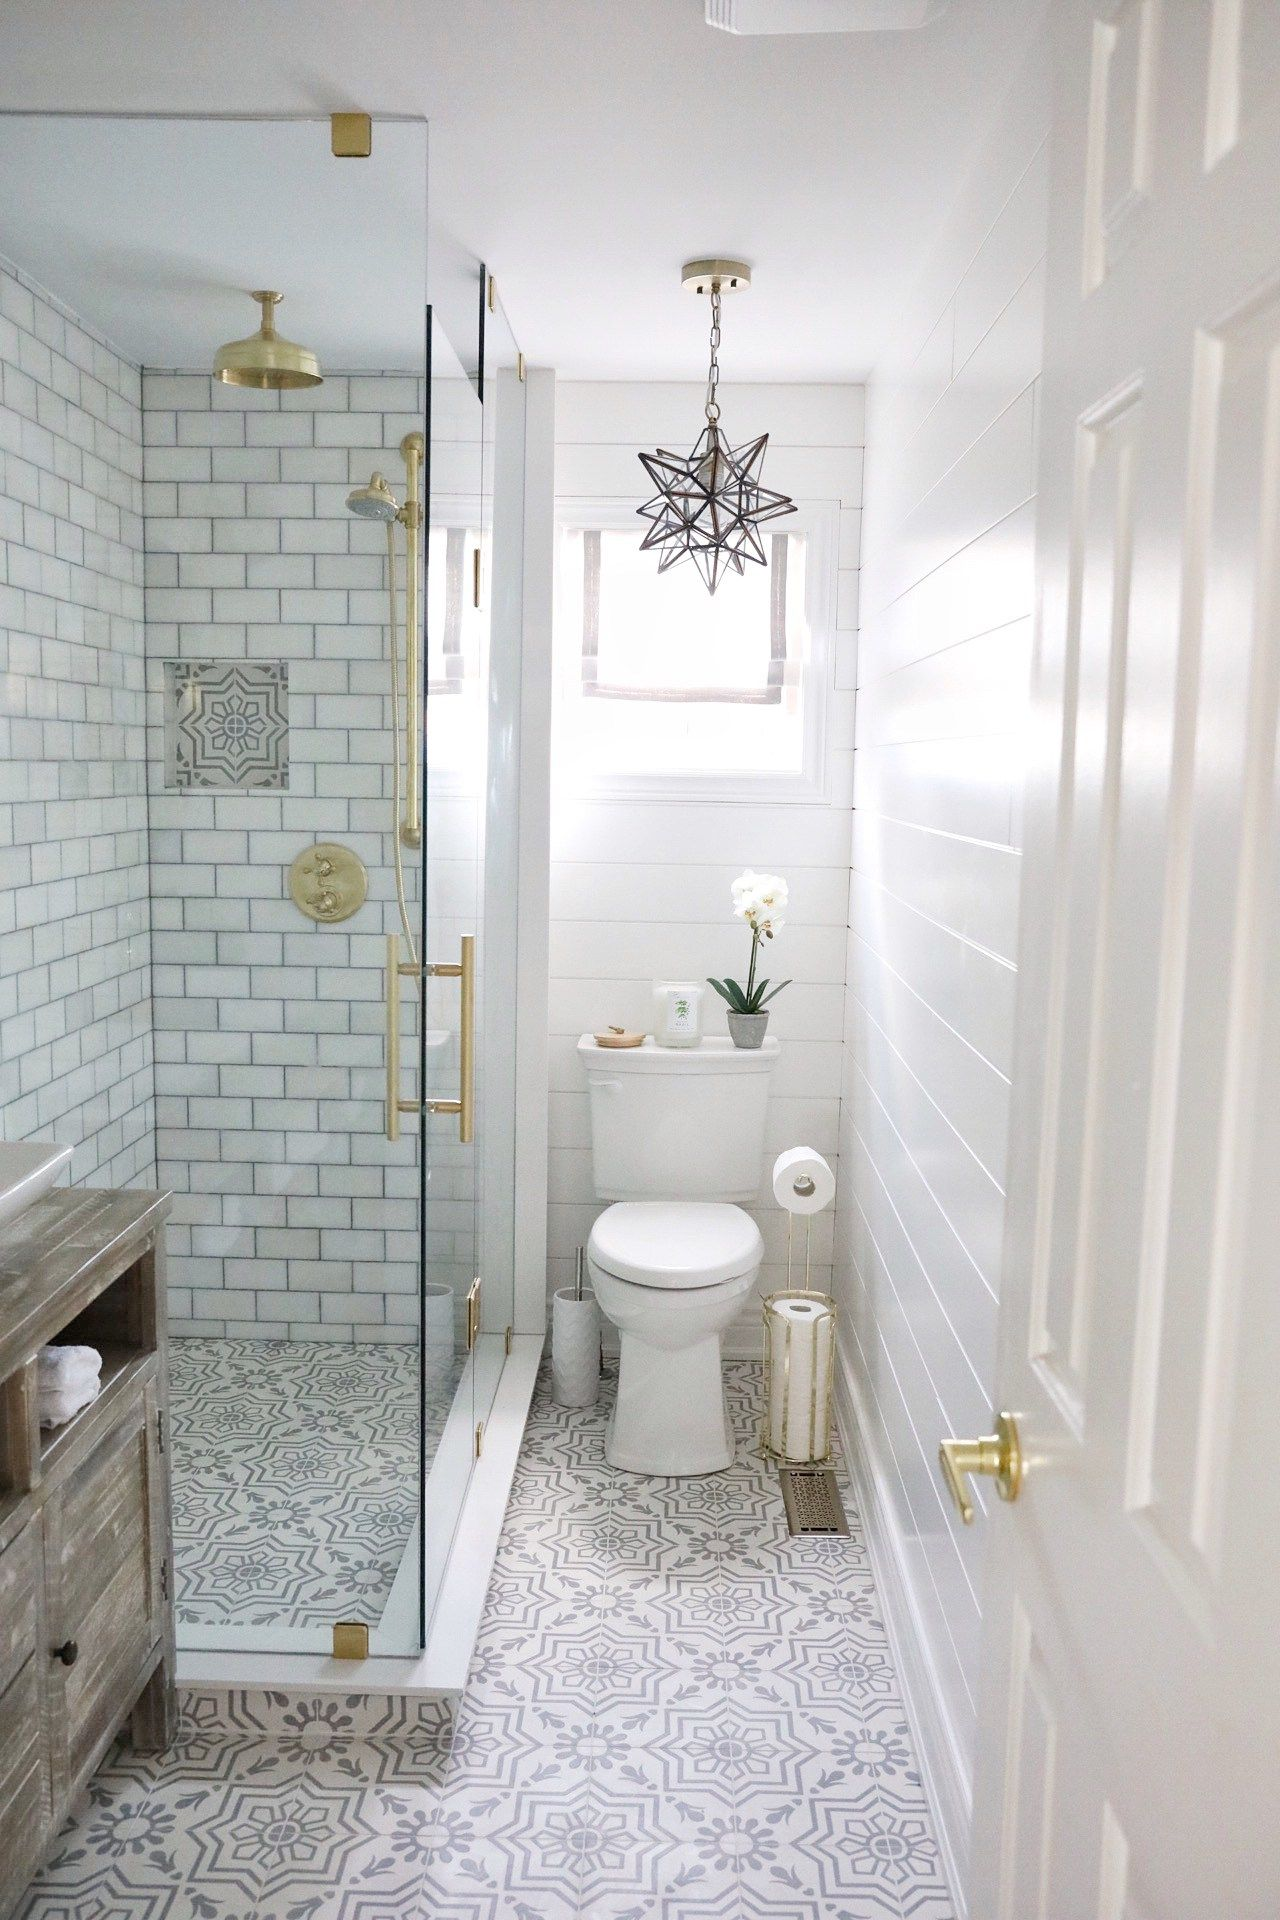 A Simply Beautiful Bathroom Makeover Simply Beautiful Eating Bathroom Interior Design Small Bathroom Makeover Small Bathroom Remodel